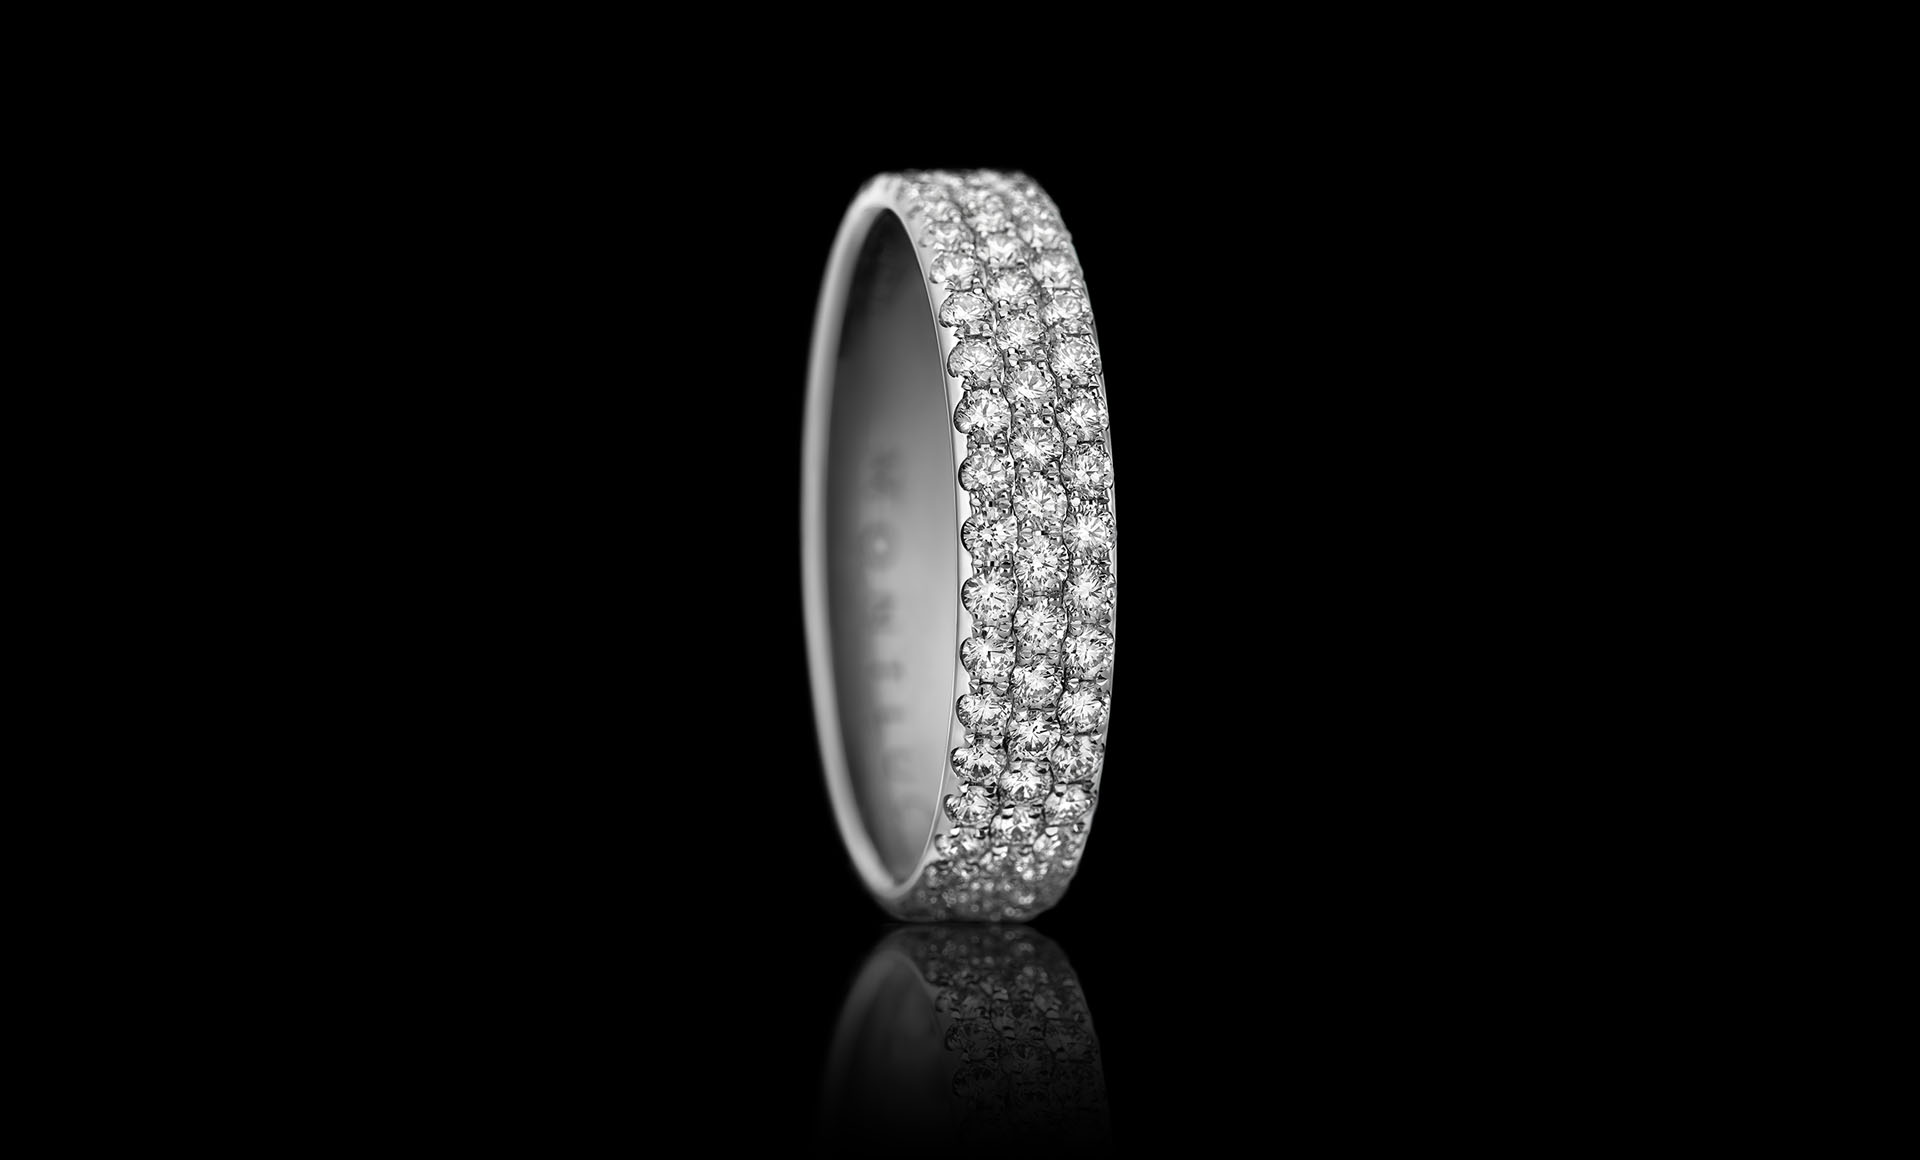 Constellation No.3 - a beautiful 3-row diamond ring.